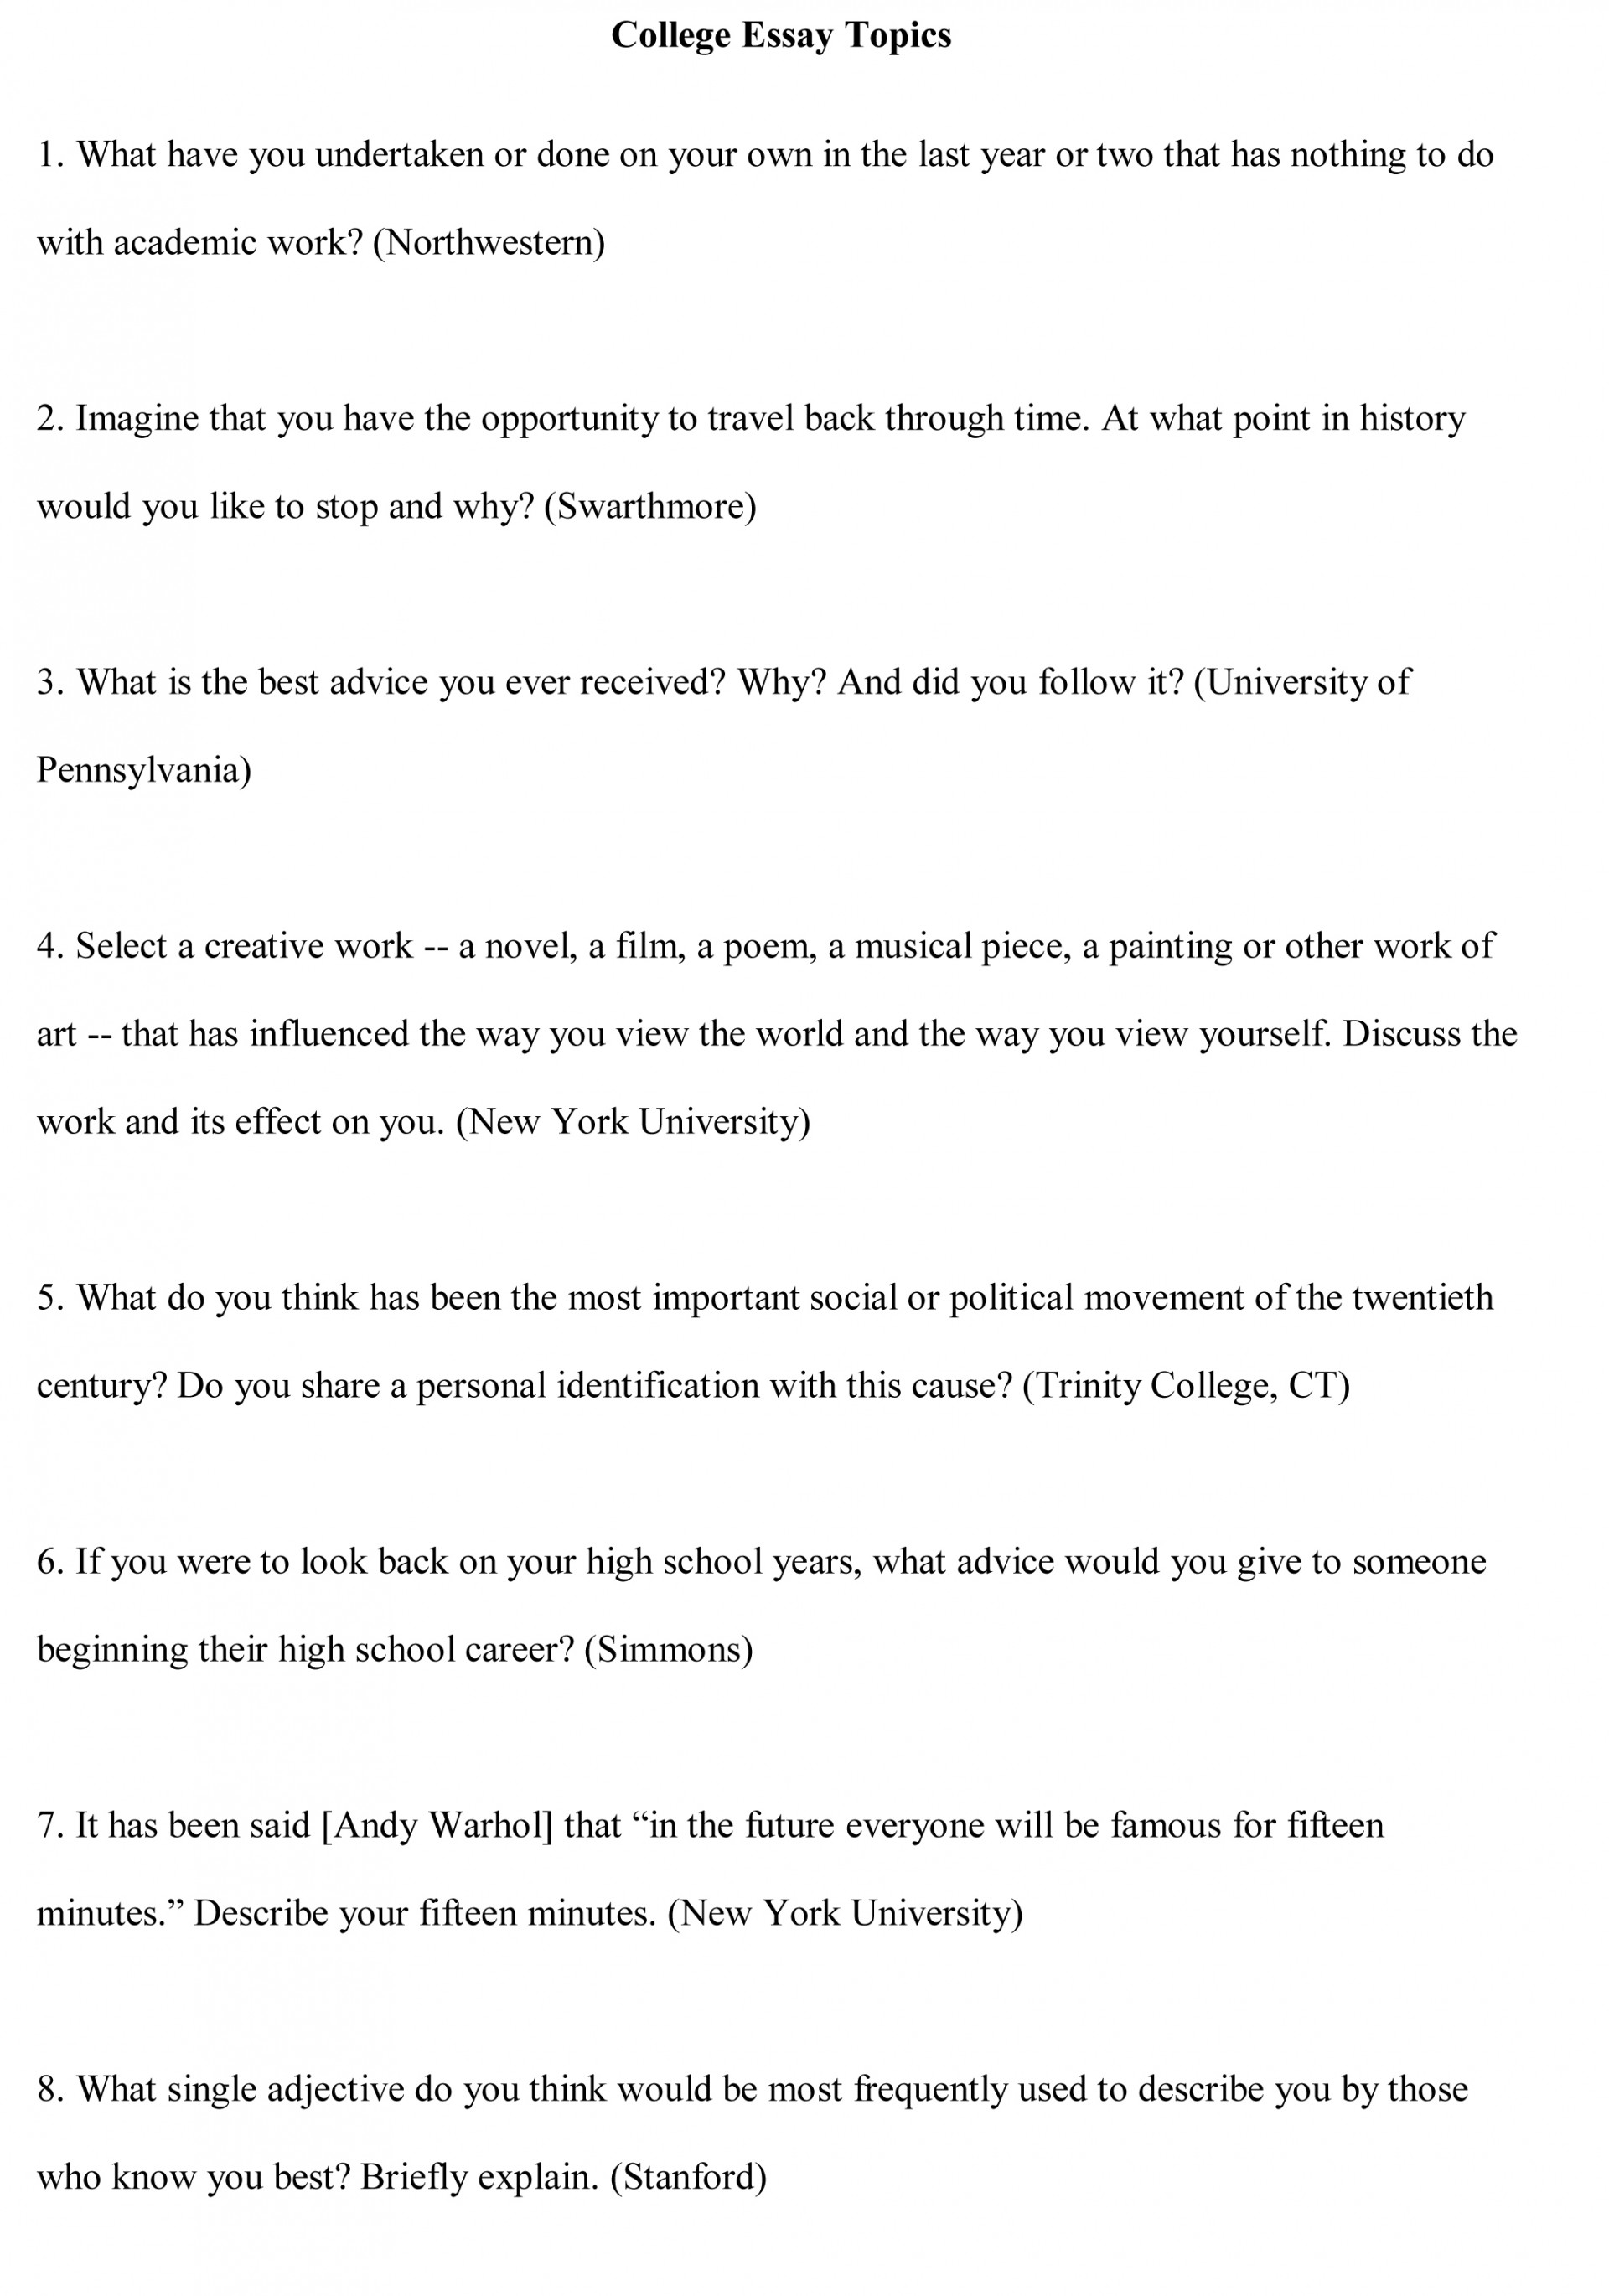 015 College Essay Topics Free Sample1 Automatic Writer Incredible 1920